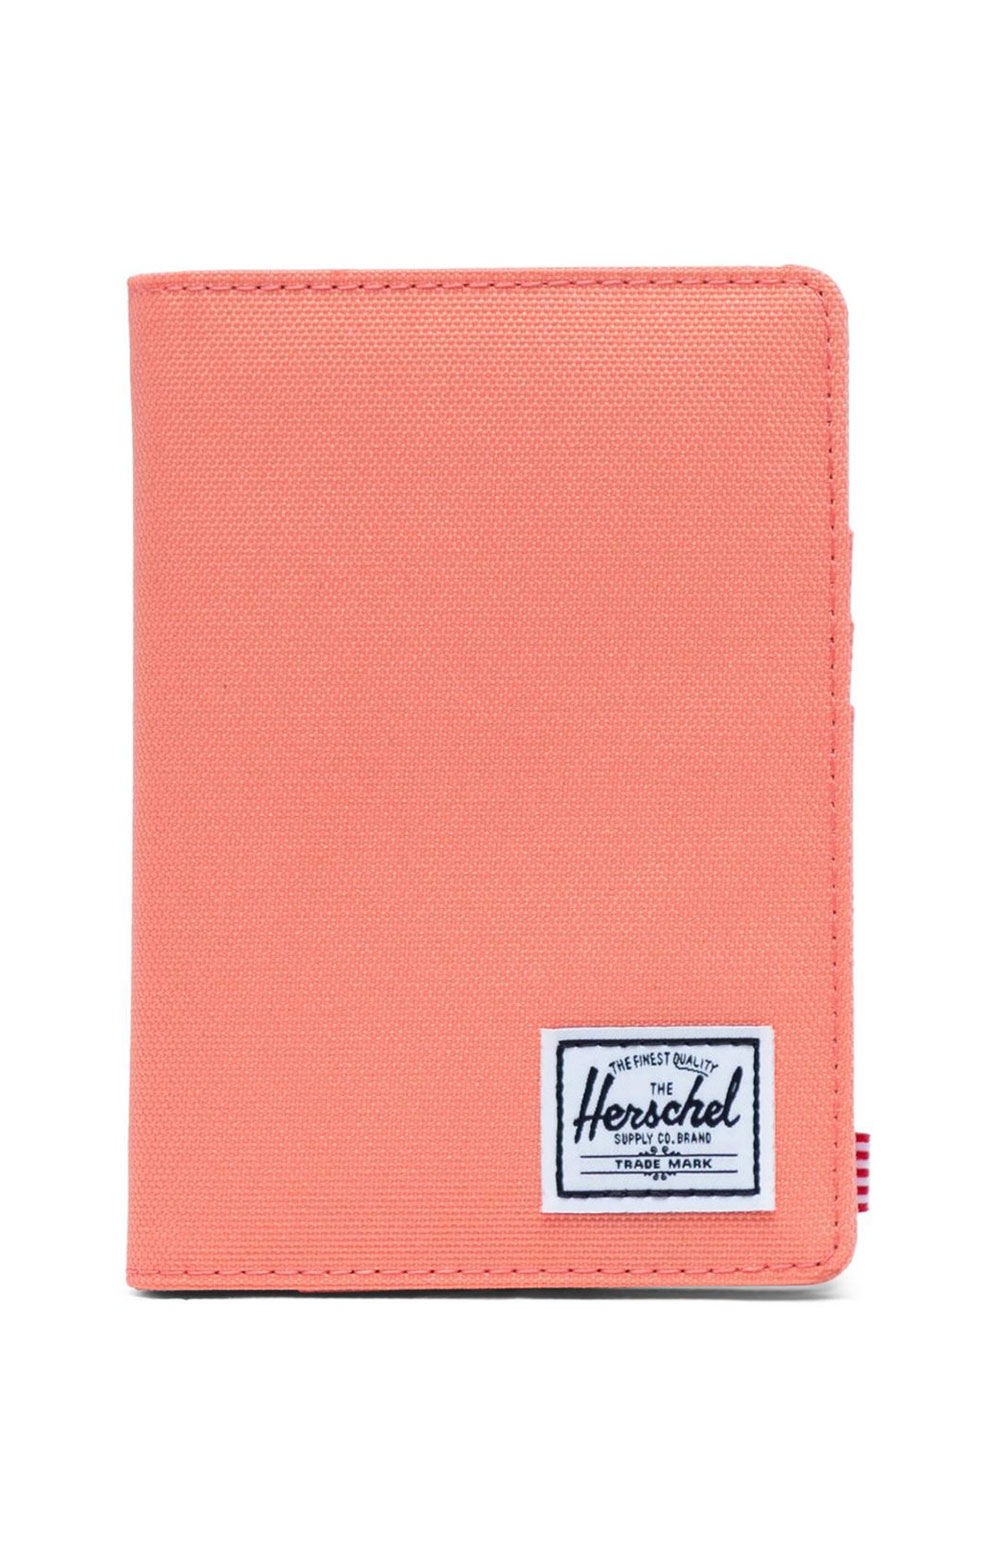 Raynor Passport Holder - Fresh Salmon